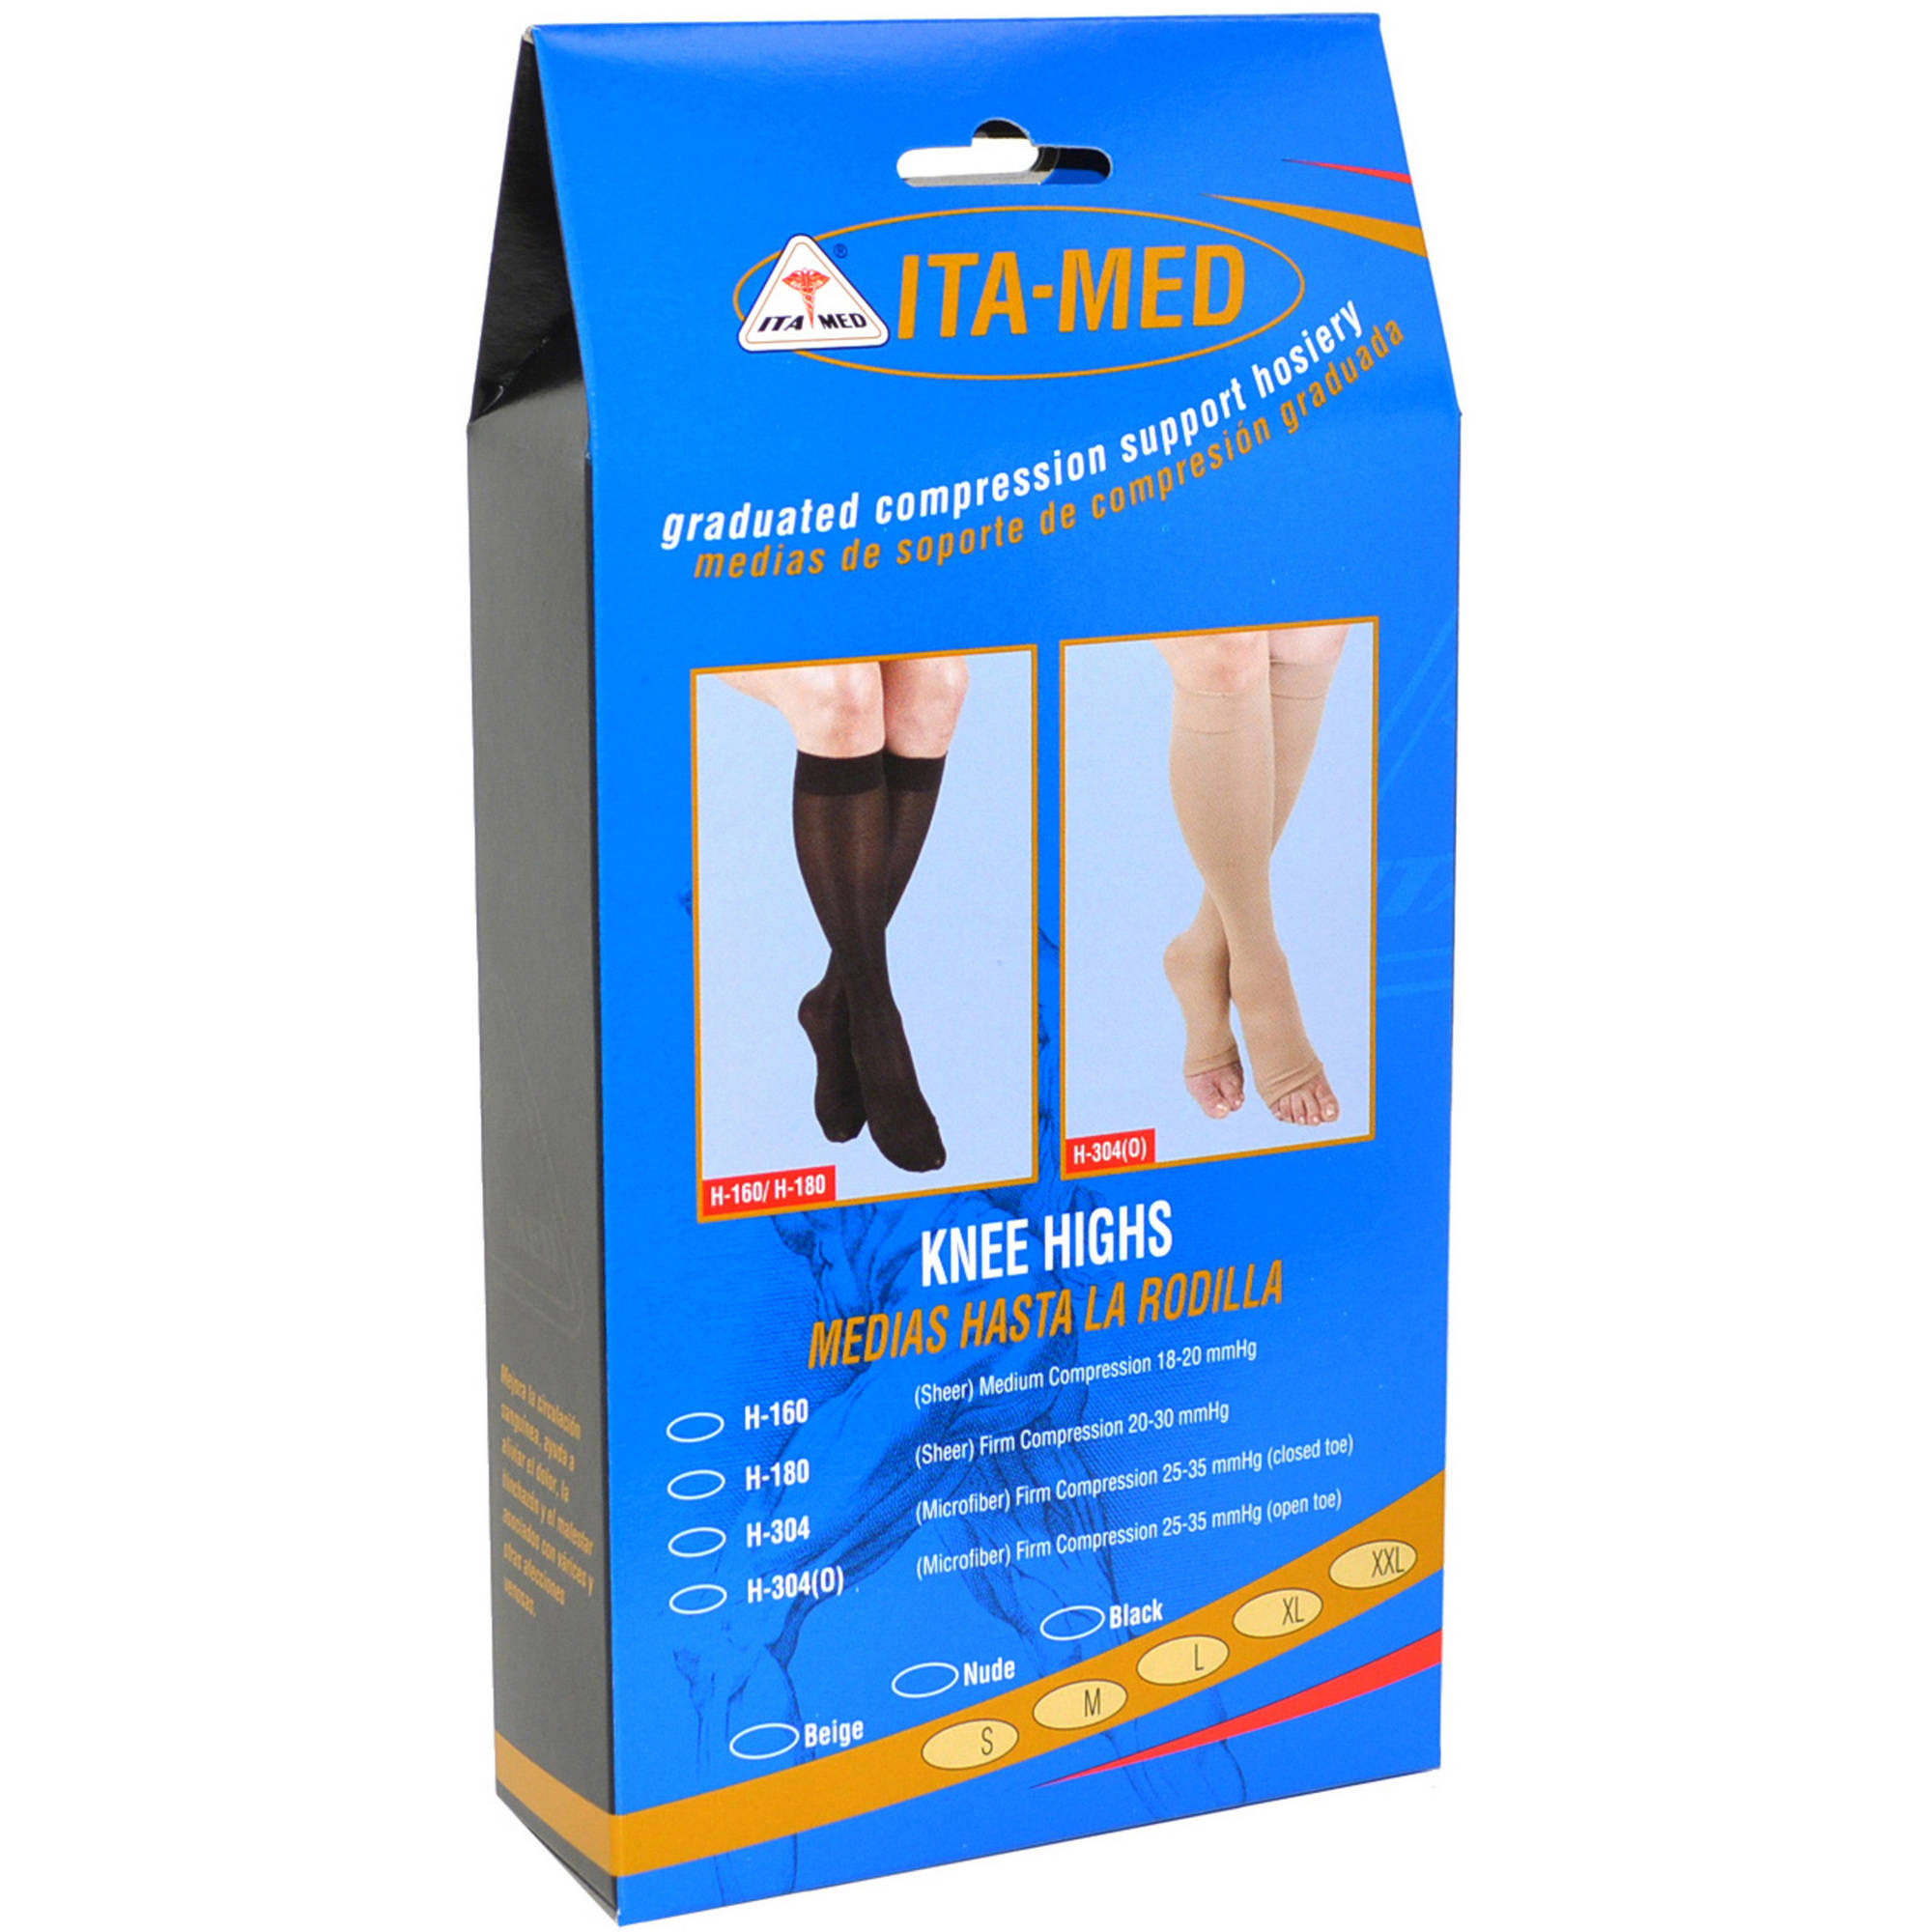 ITA-MED Sheer Knee Highs - Compression (23-30 mmHg): H-180